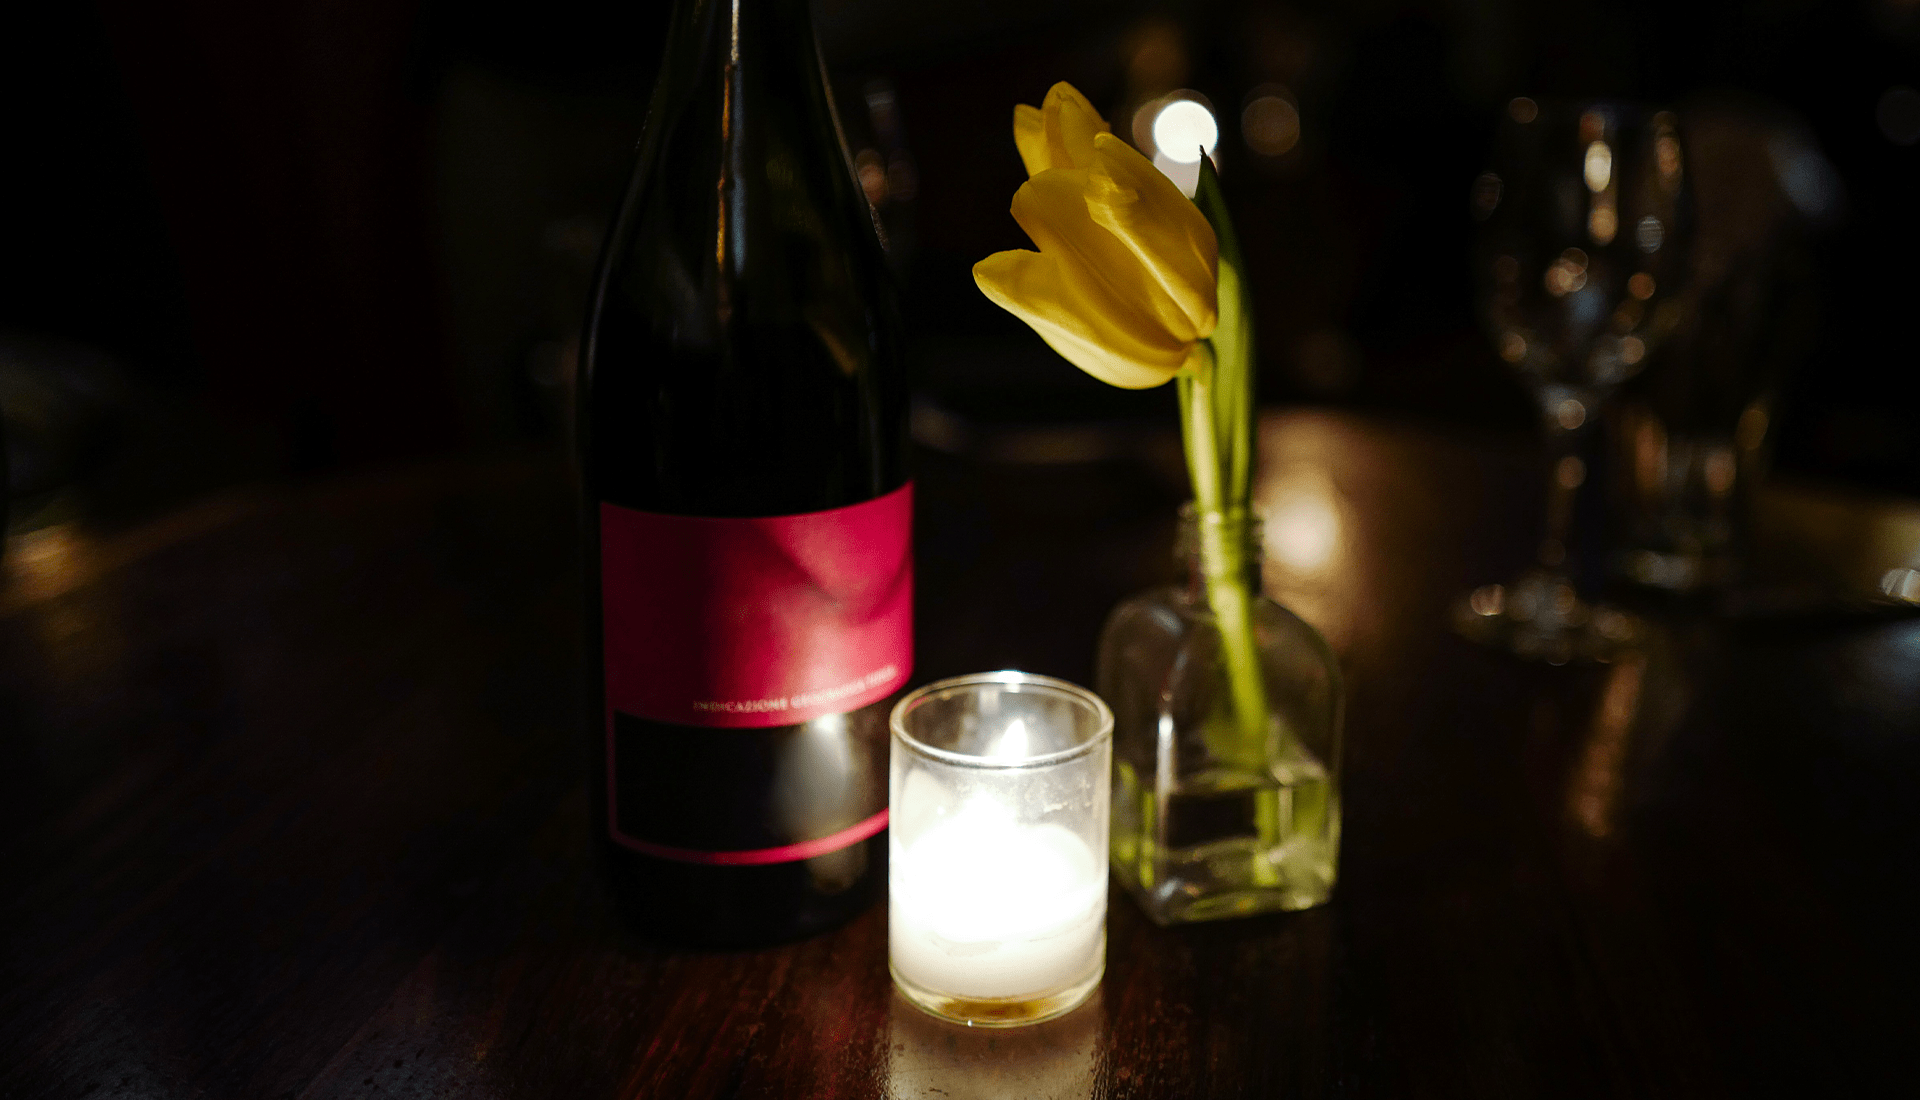 Bread & Tulips Wine